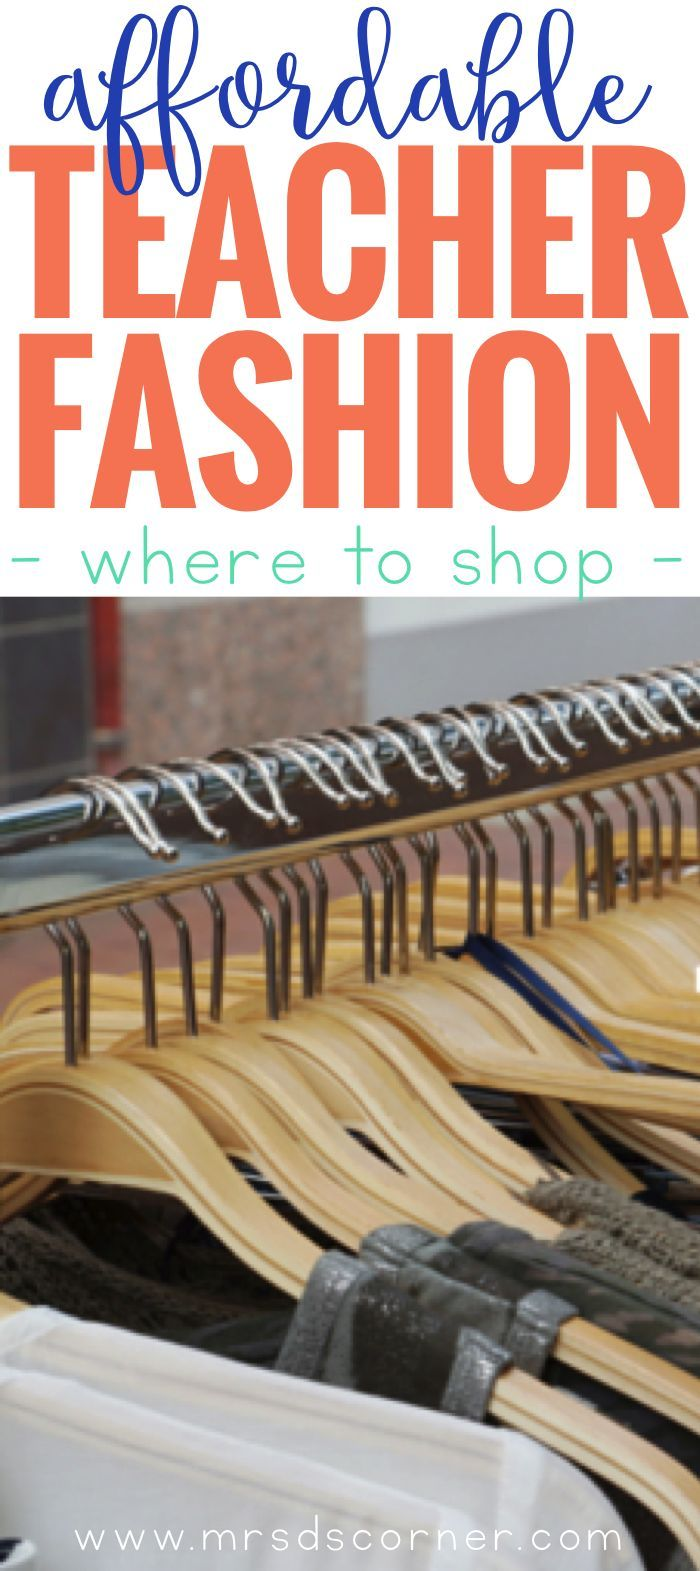 Teacher fashion on a budget. Affordable, comfortable teacher fashion and where to buy it. We need to be professionally dressed and presentable at all times... and teachers are constantly on the go and moving. Blog post at Mrs. D's Corner.